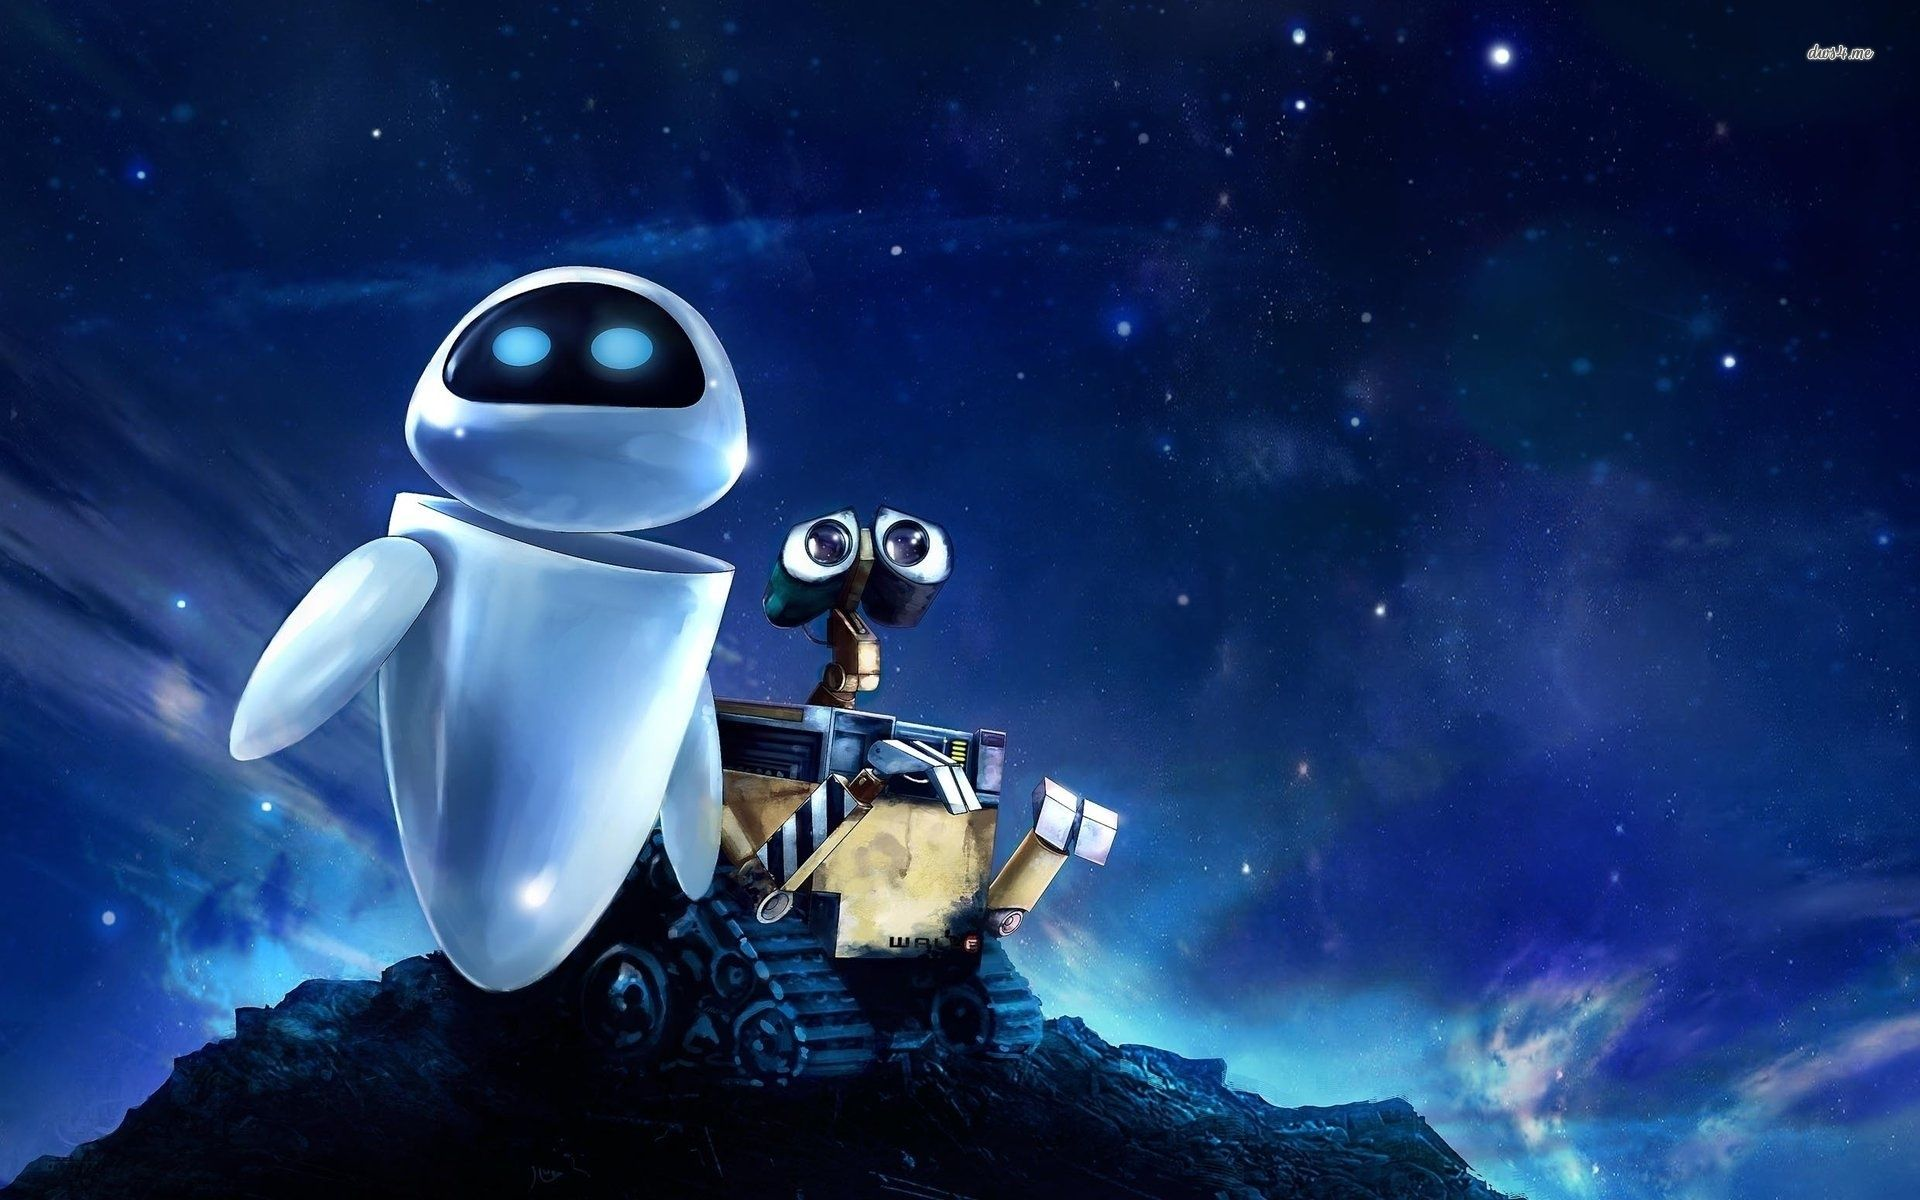 Top 10 Most Unlikely Couples In The Multiverse Wall E Eve Wall E Disney Hintergrund